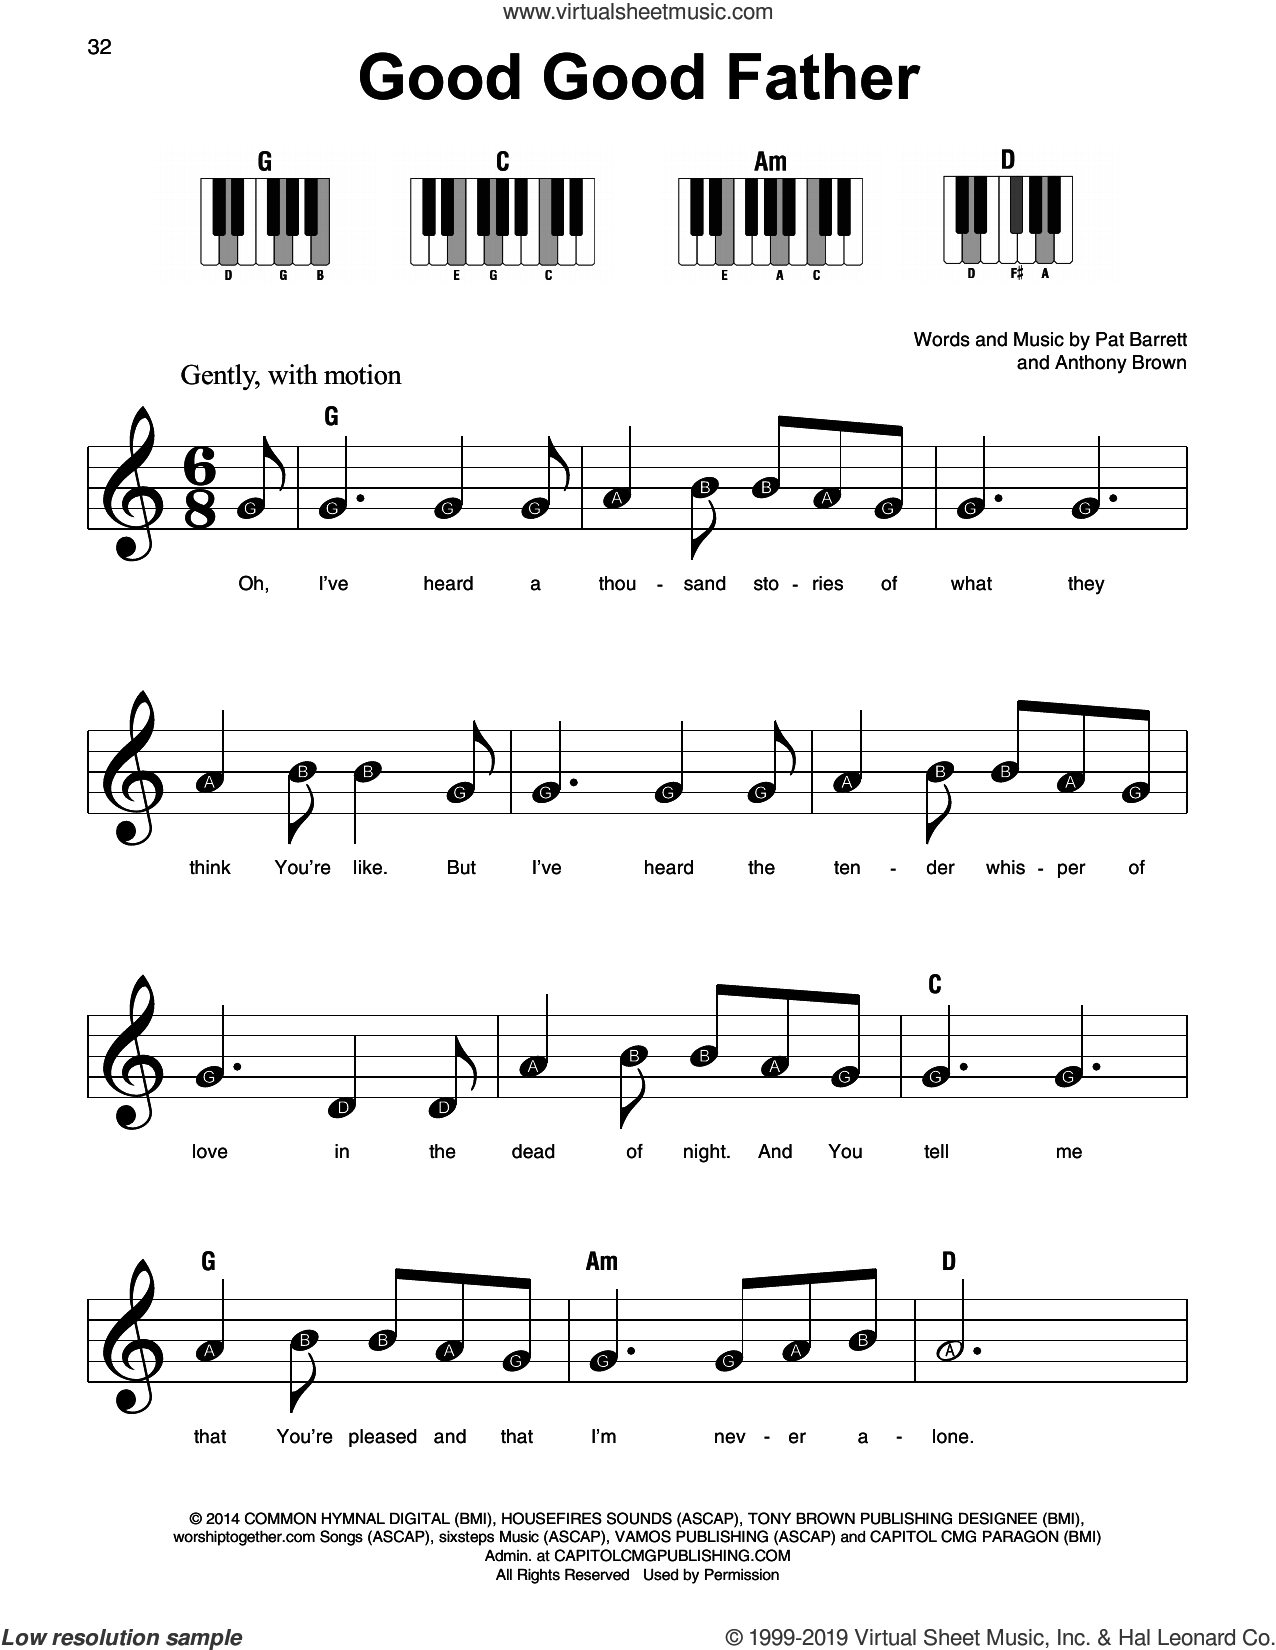 Good Good Father sheet music for piano solo by Chris Tomlin, Anthony Brown and Pat Barrett, beginner skill level